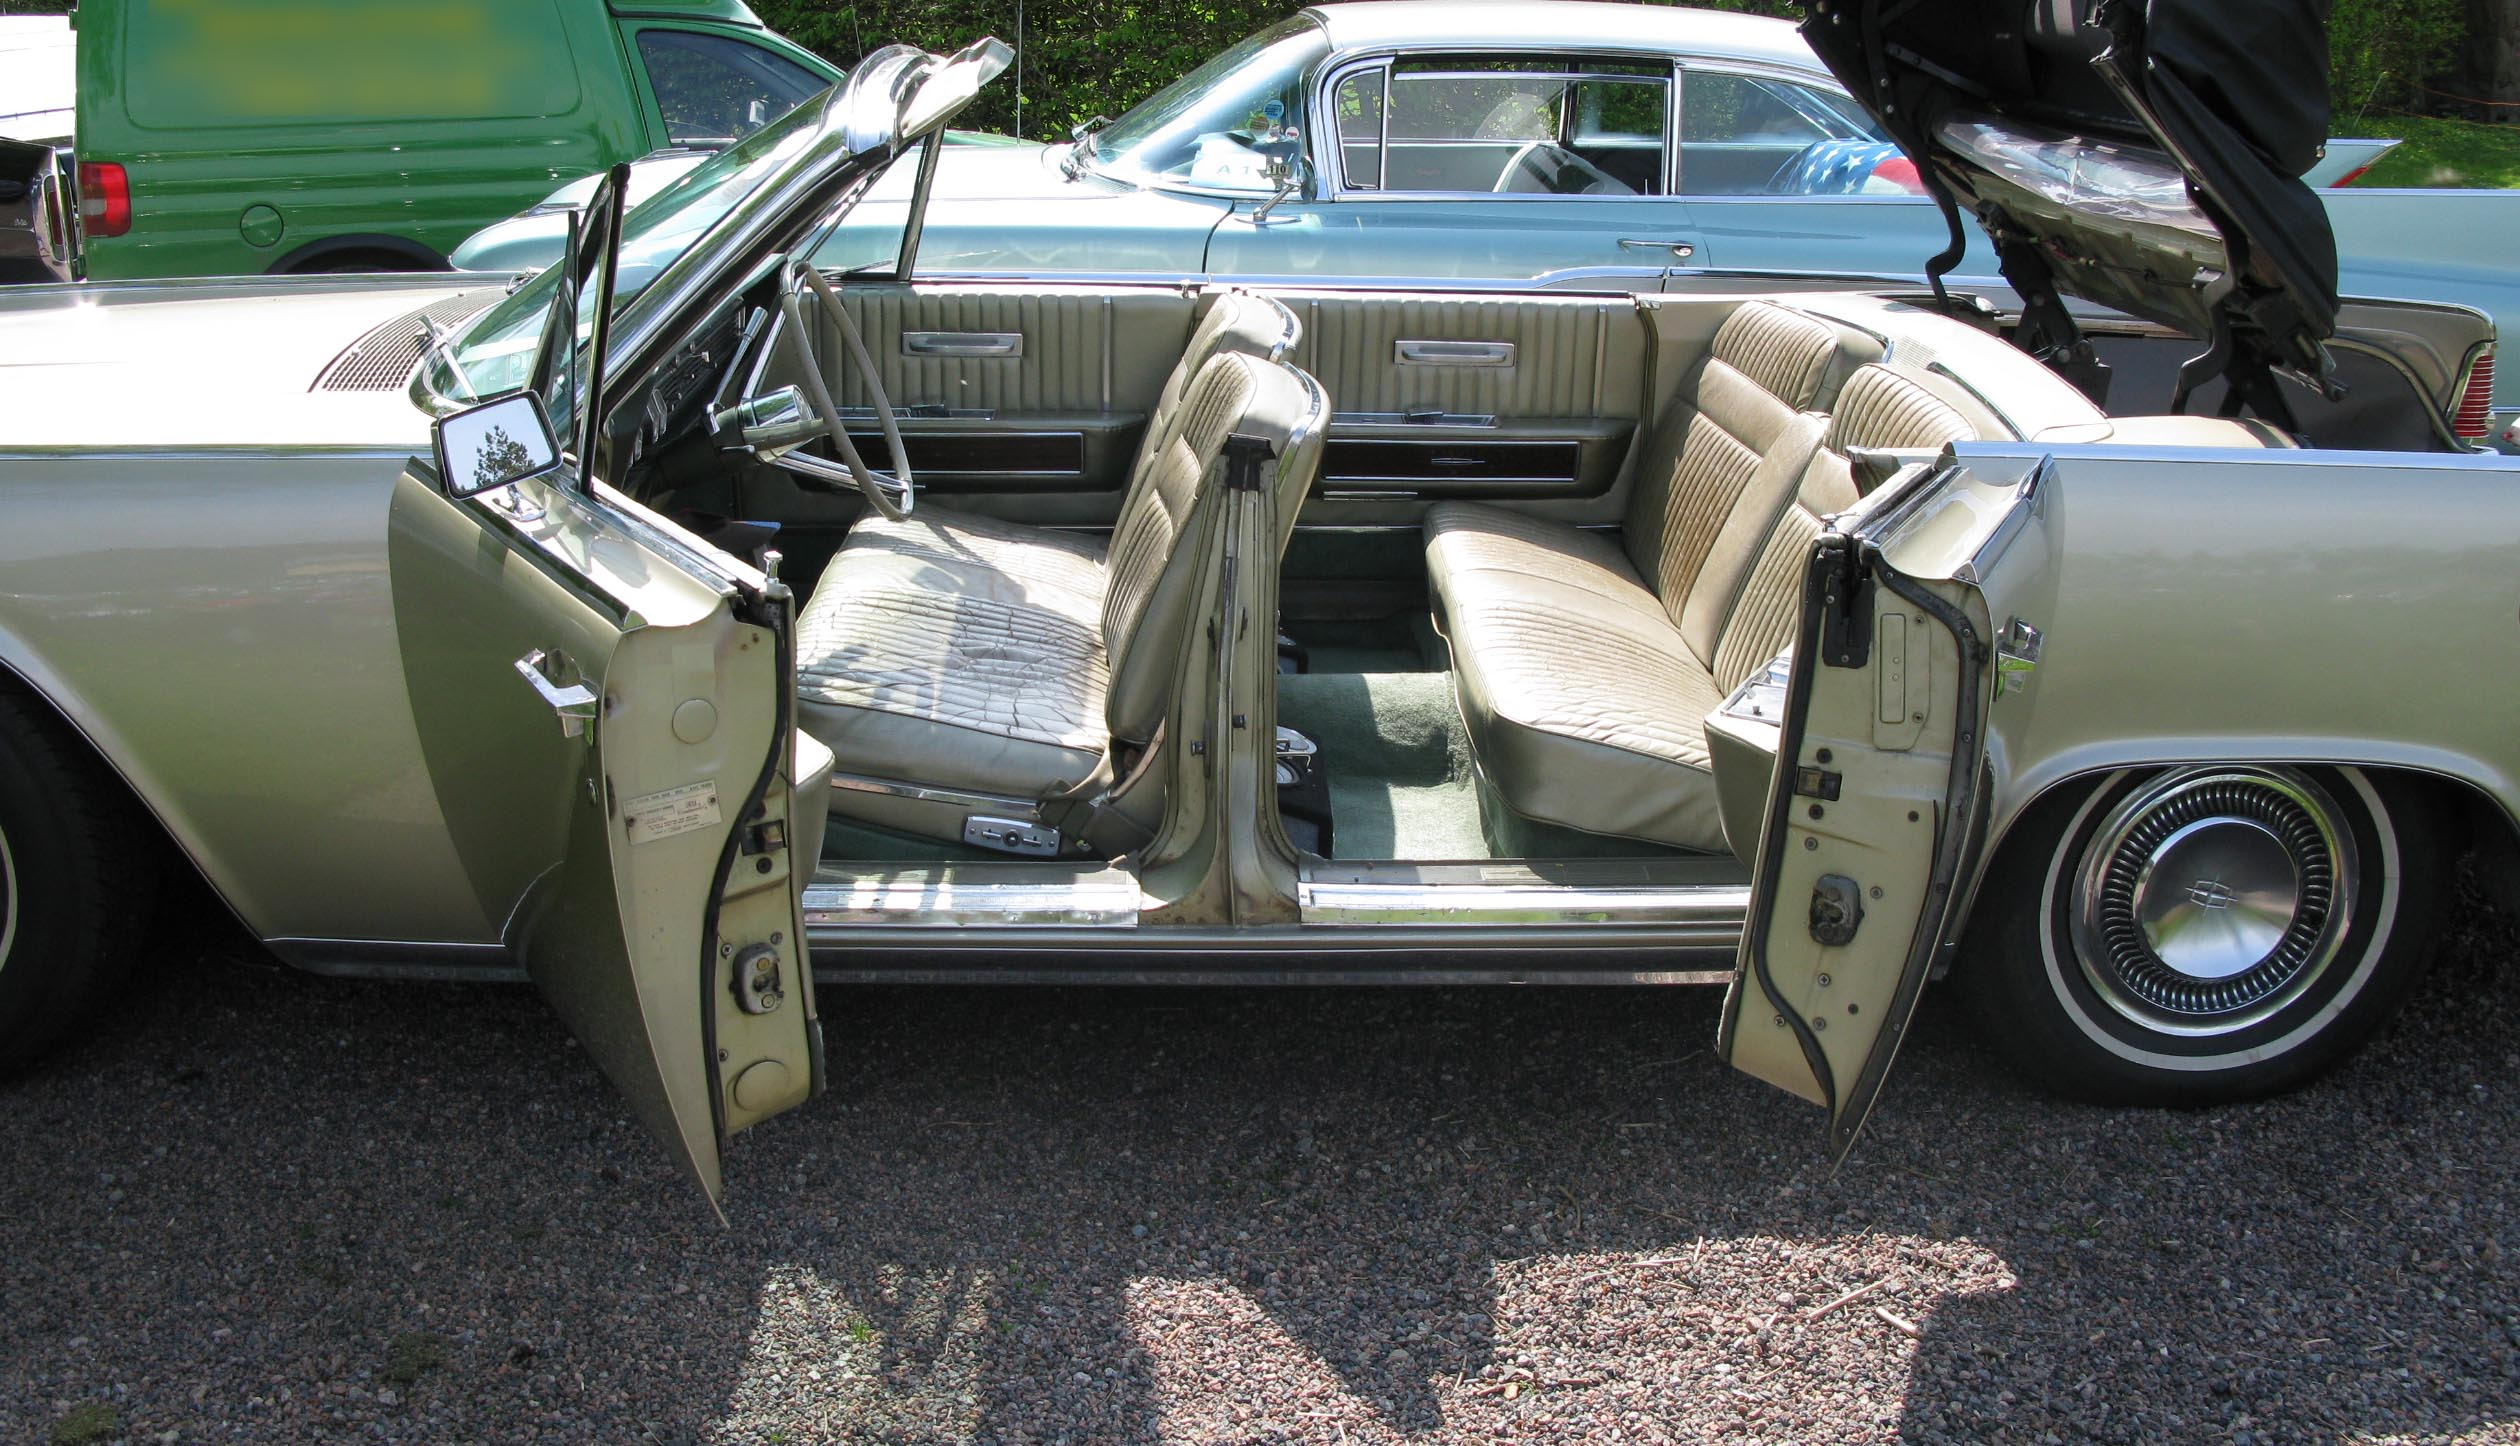 Elegant File:1960s Lincoln Continental Convertible With Suicide Doors Open